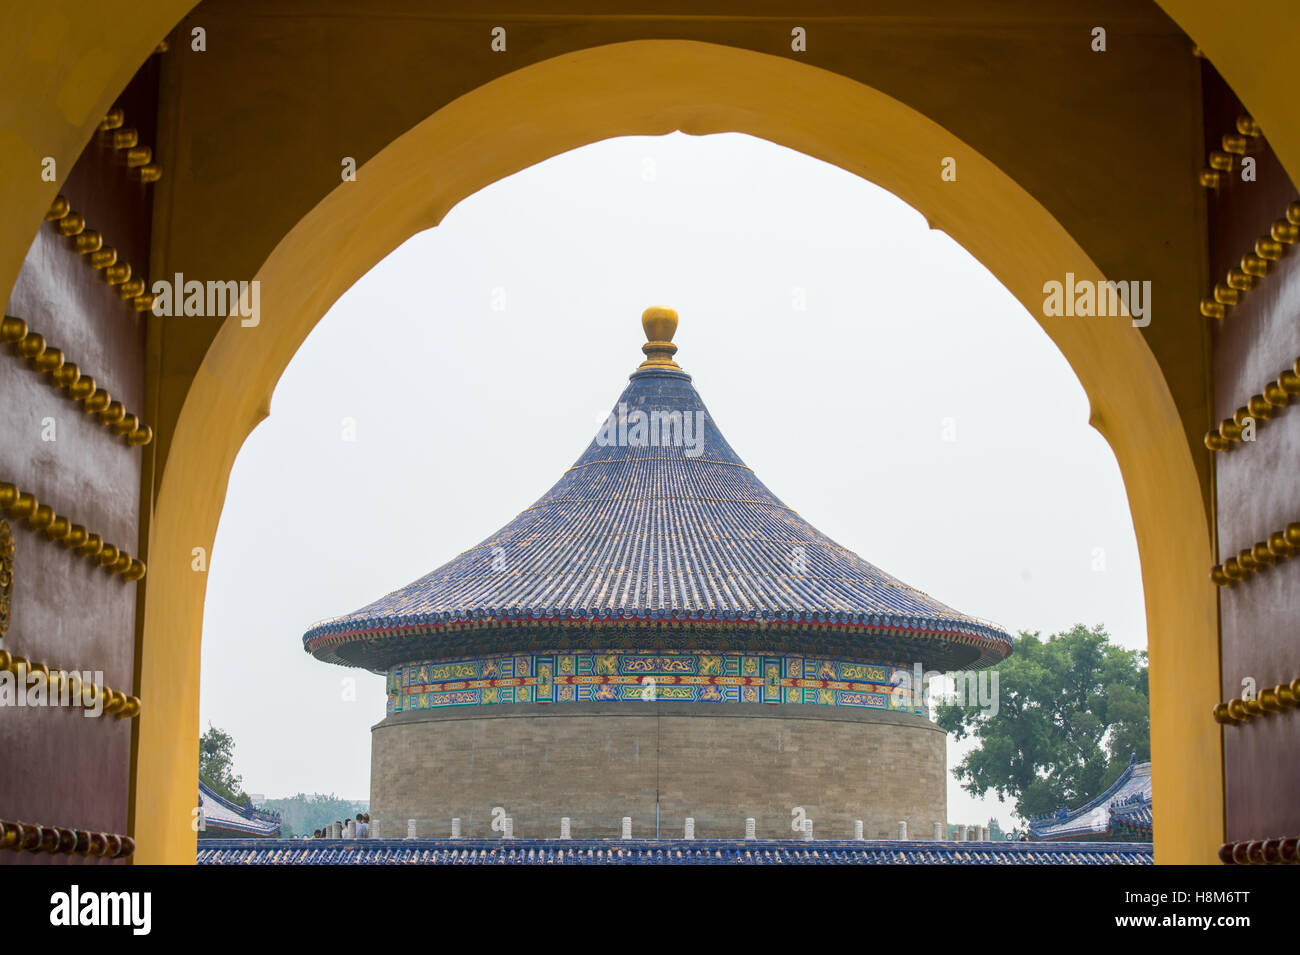 Beijing, China - Outside the gates of the Temple of Heaven, an imperial sacrificial altar located in Central Beijing. Stock Photo